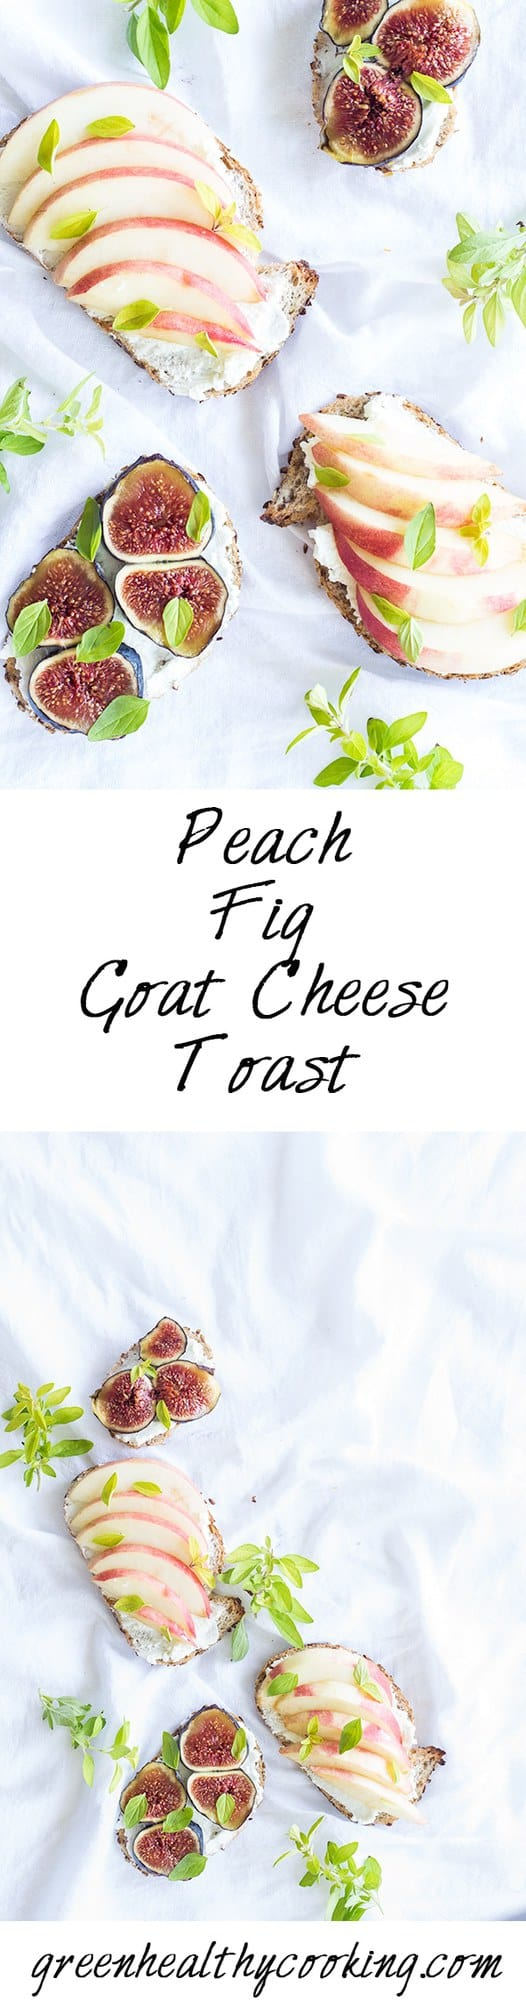 Collage of Peach Fig Goat Cheese Toast images with text overlay for Pinterest.